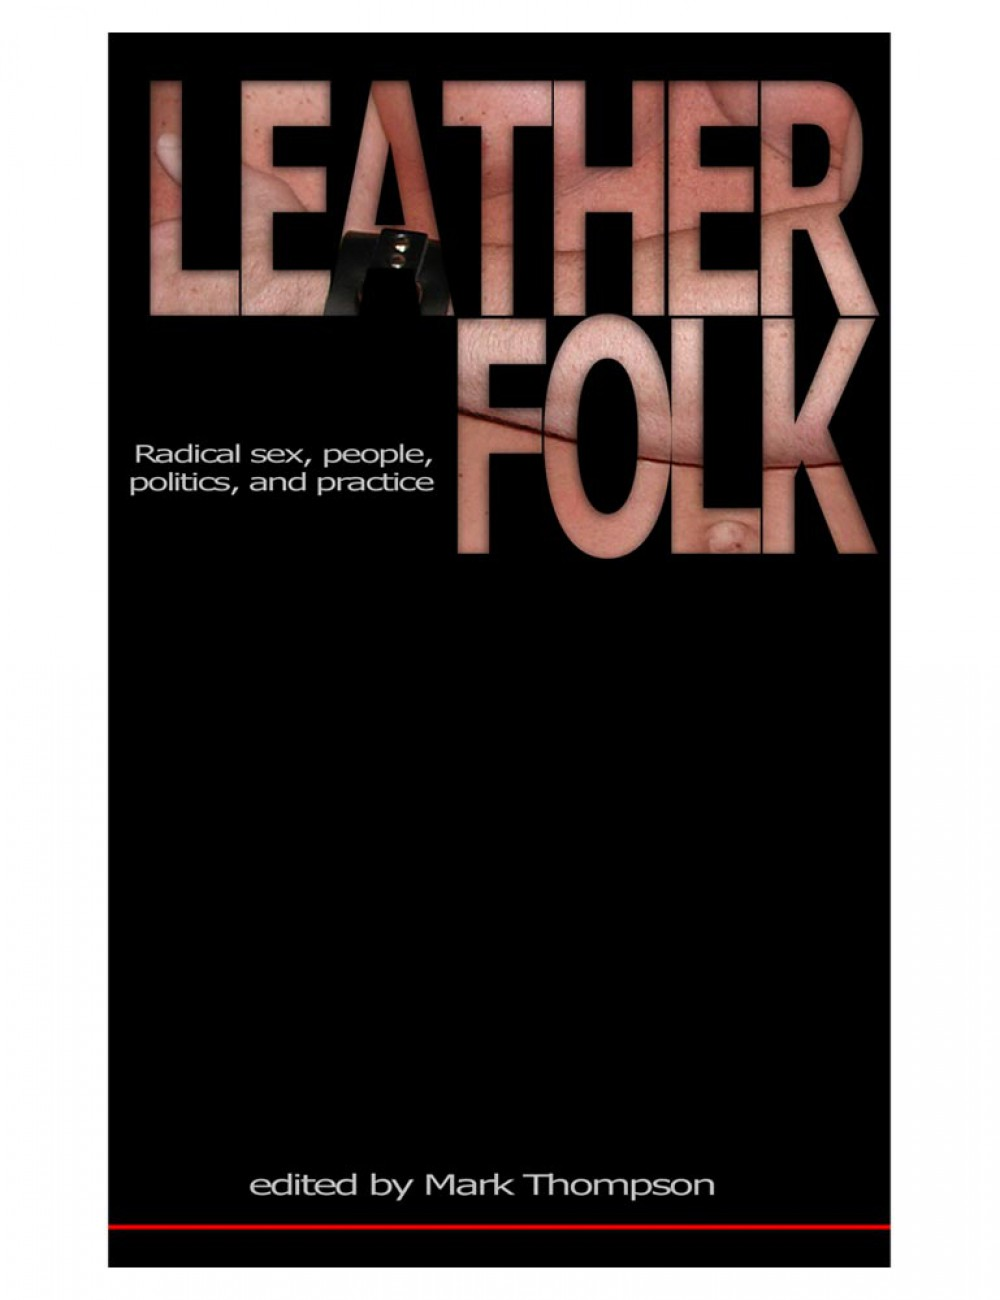 Leatherfolk (Mark Thompson, ed.)